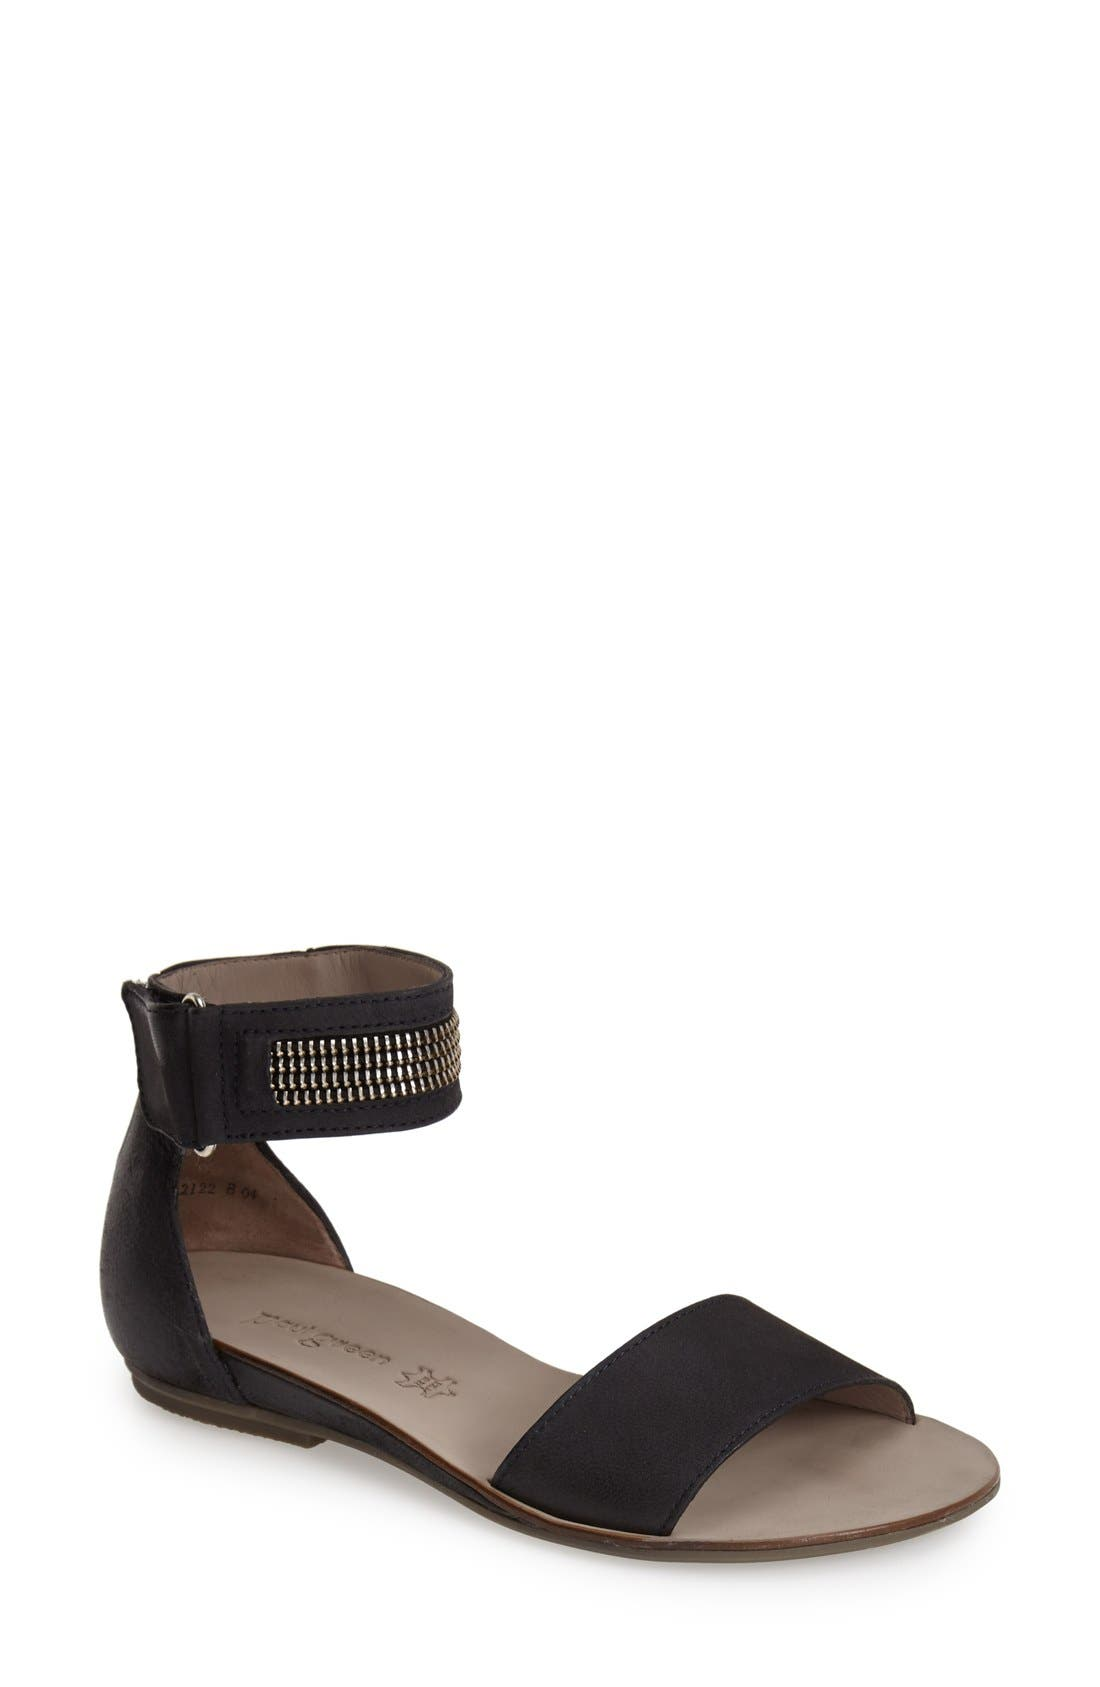 Alternate Image 1 Selected - Paul Green 'Cotie' Ankle Strap Flat Sandal (Women)